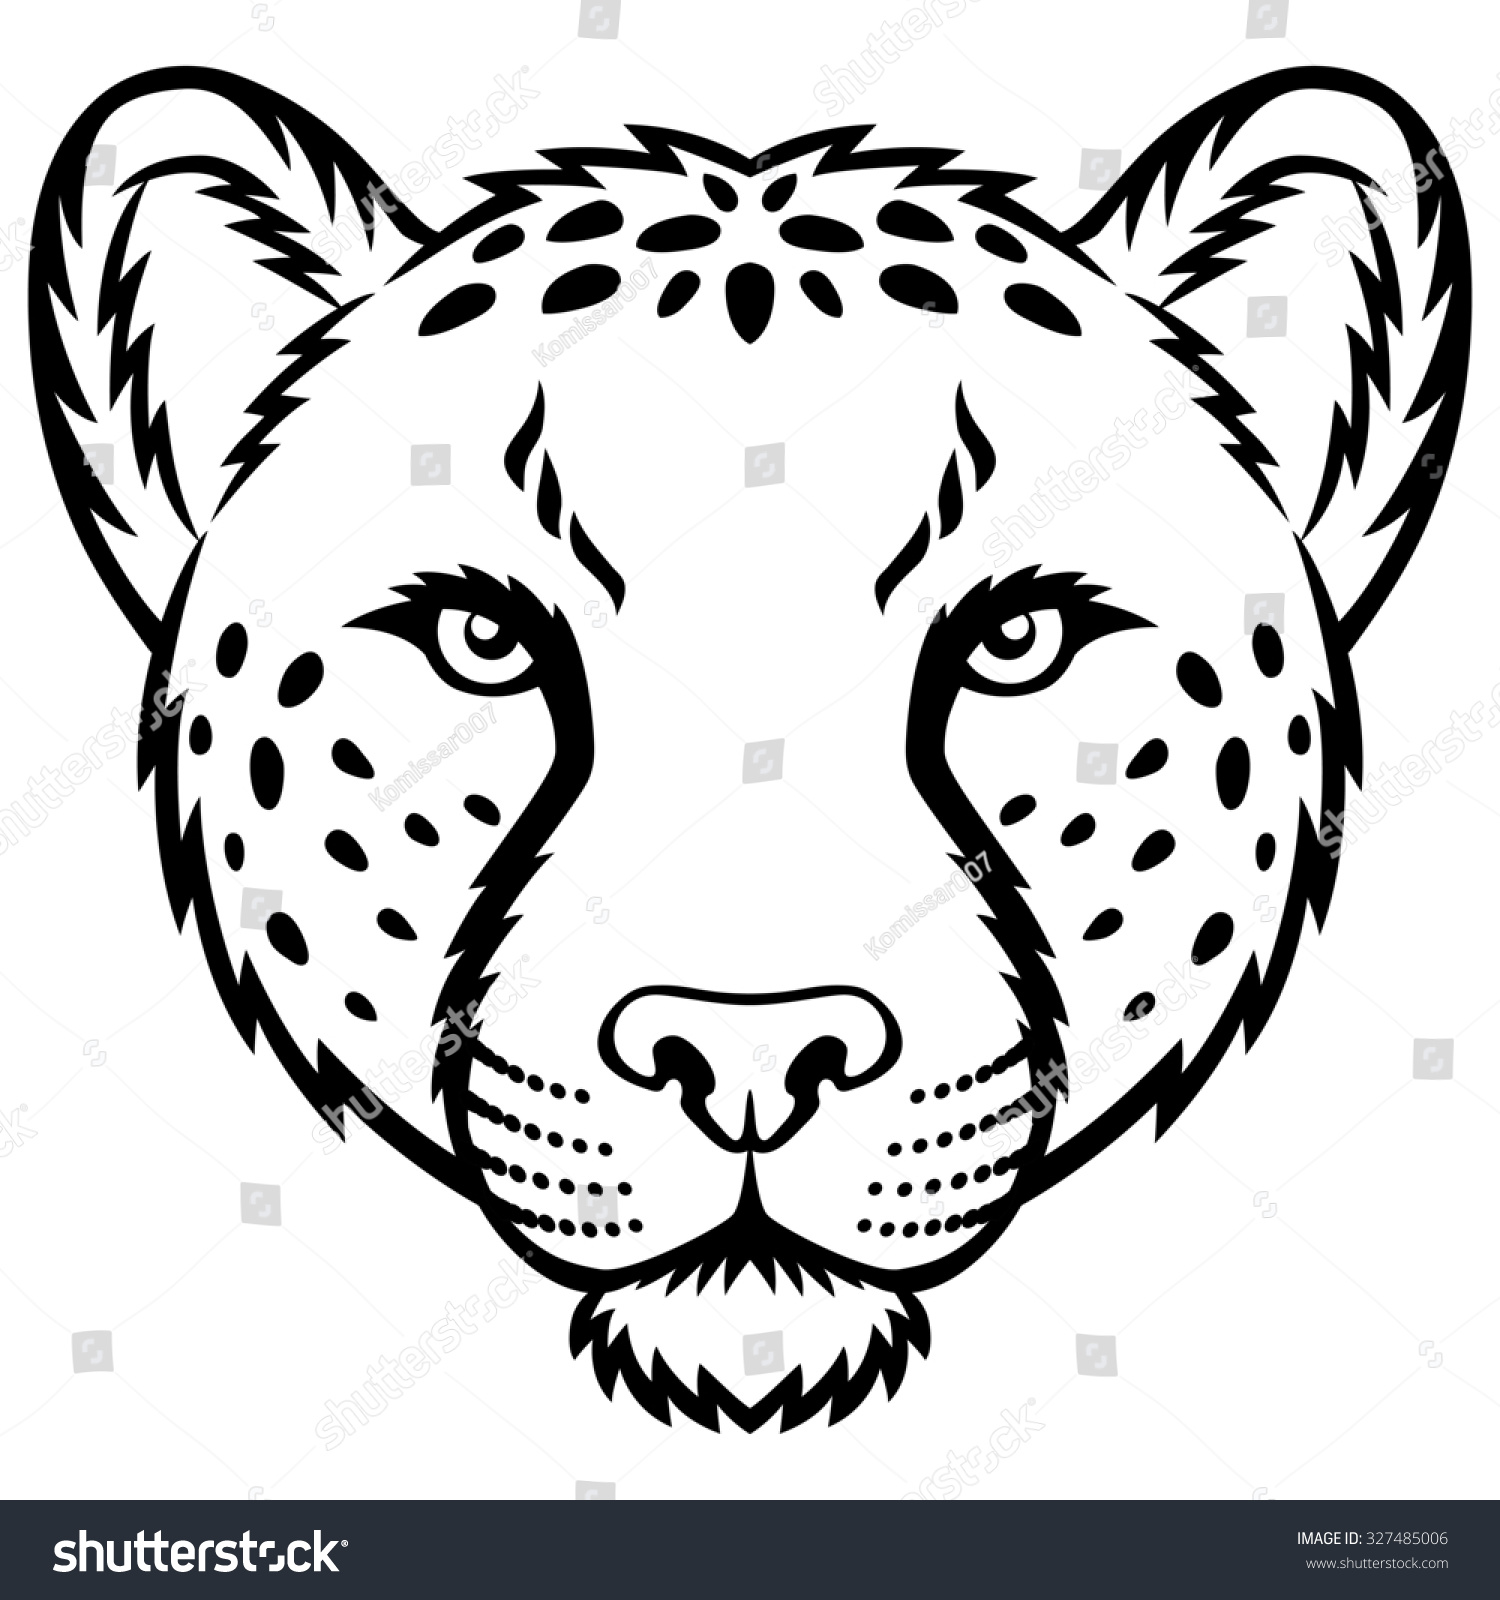 cheetah face mask template - cheetah head logo this illustration ideal stock